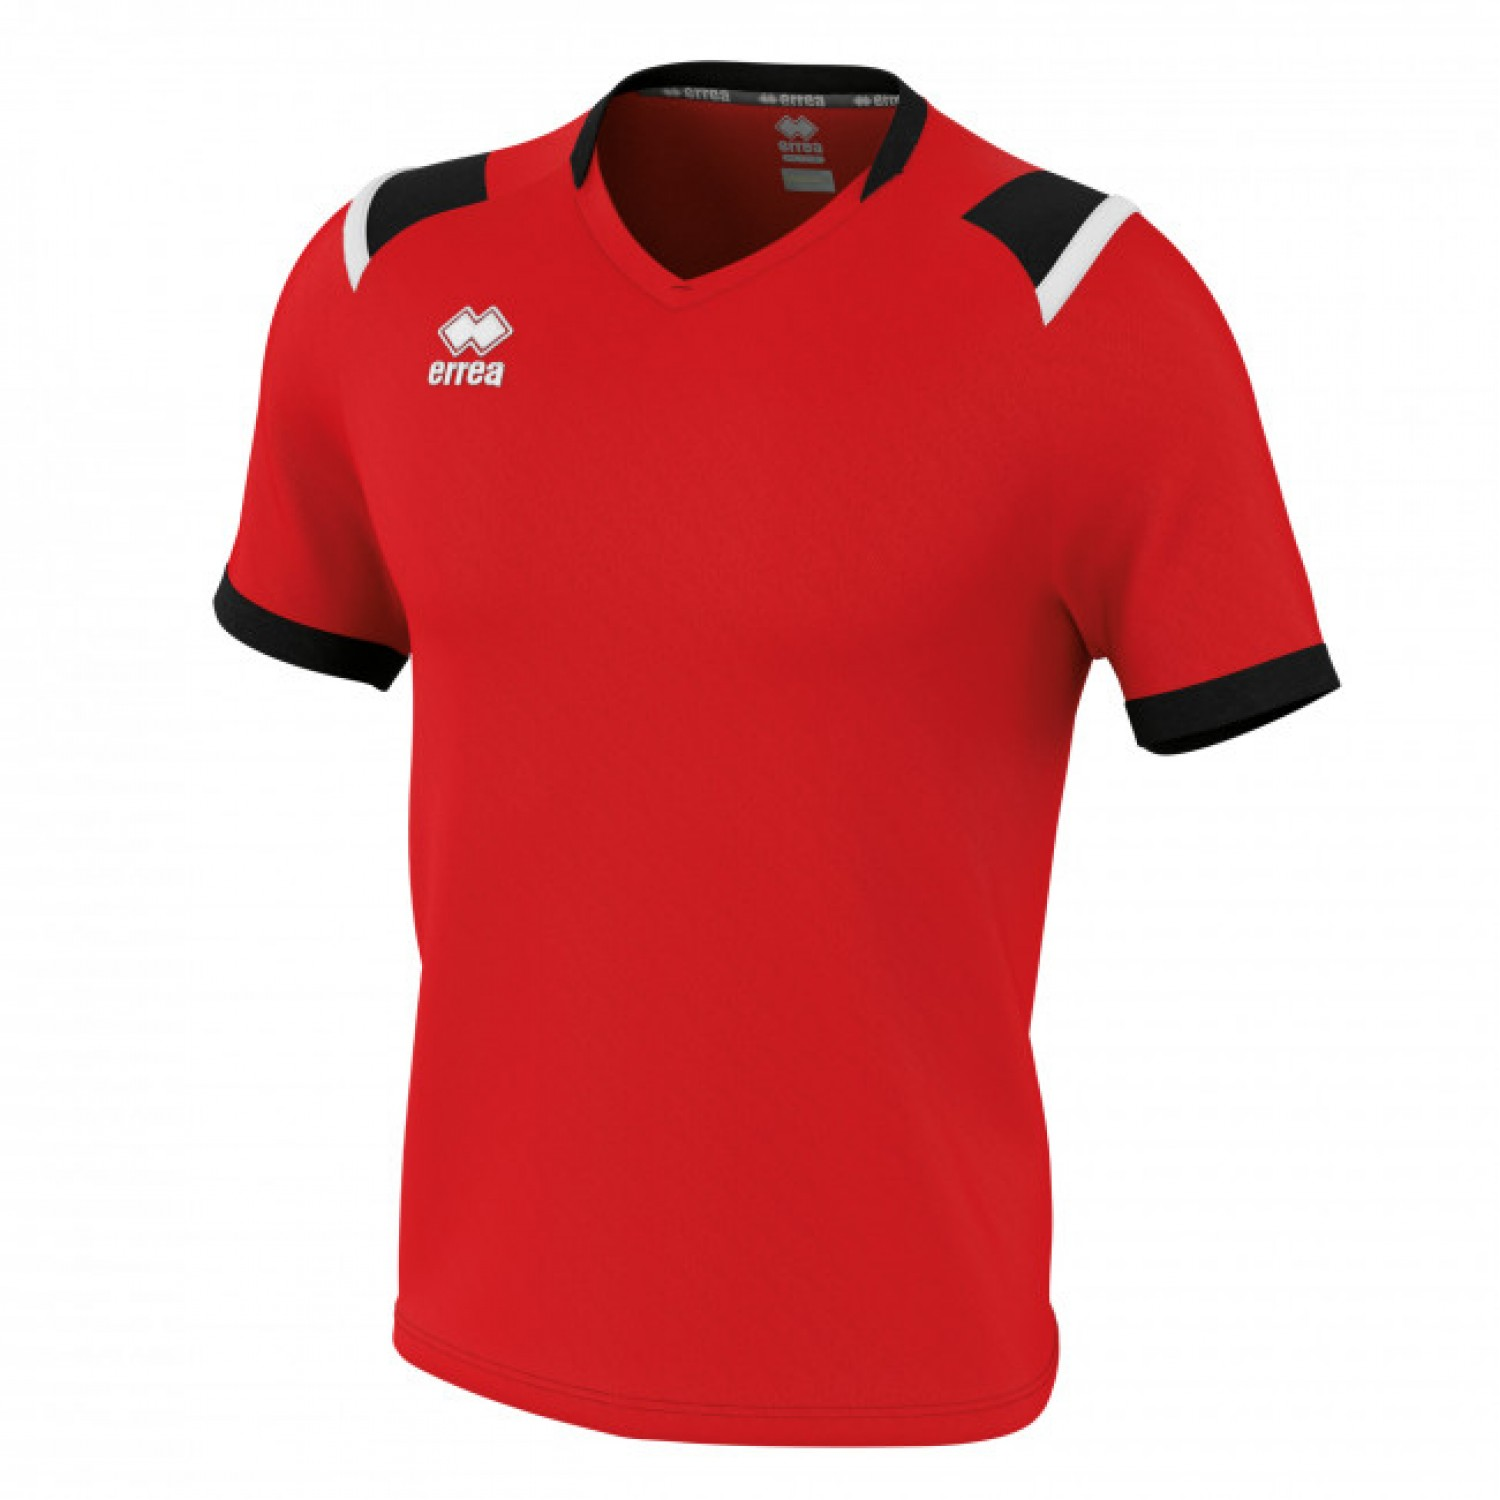 Haukar - Training shirt